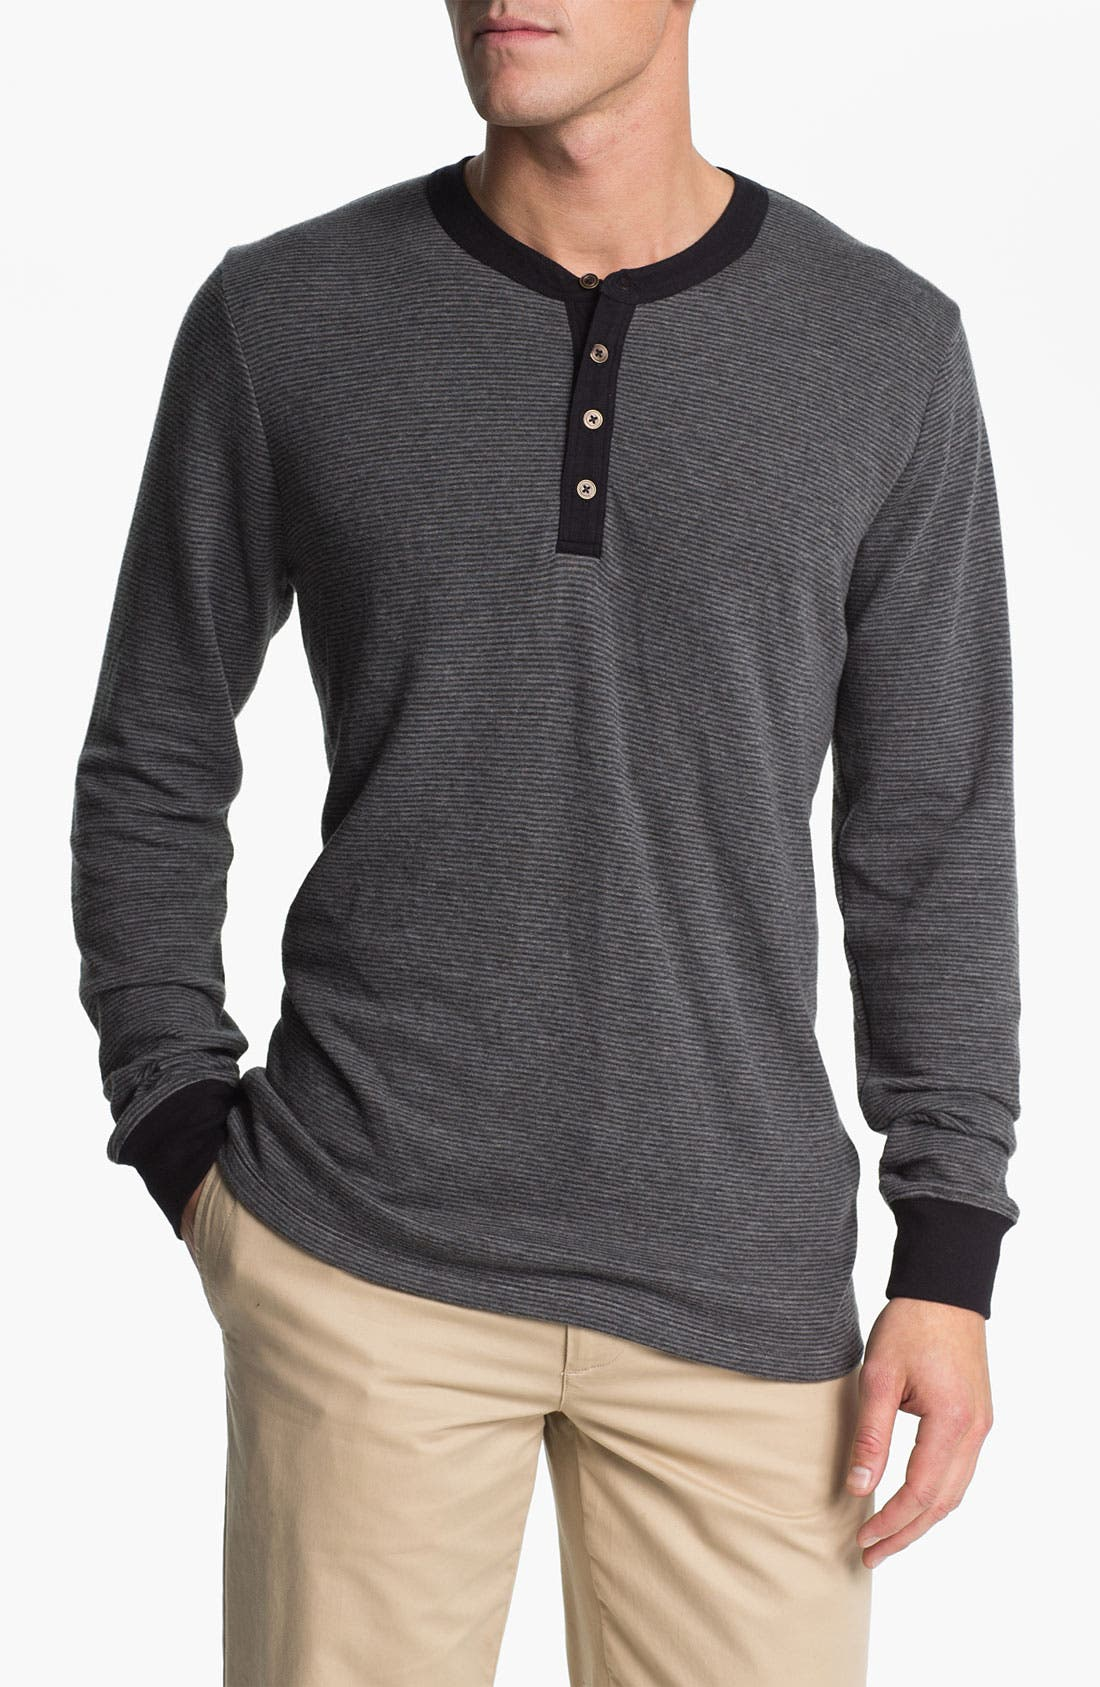 Main Image - Obey Microstripe Slim Fit Henley T-Shirt